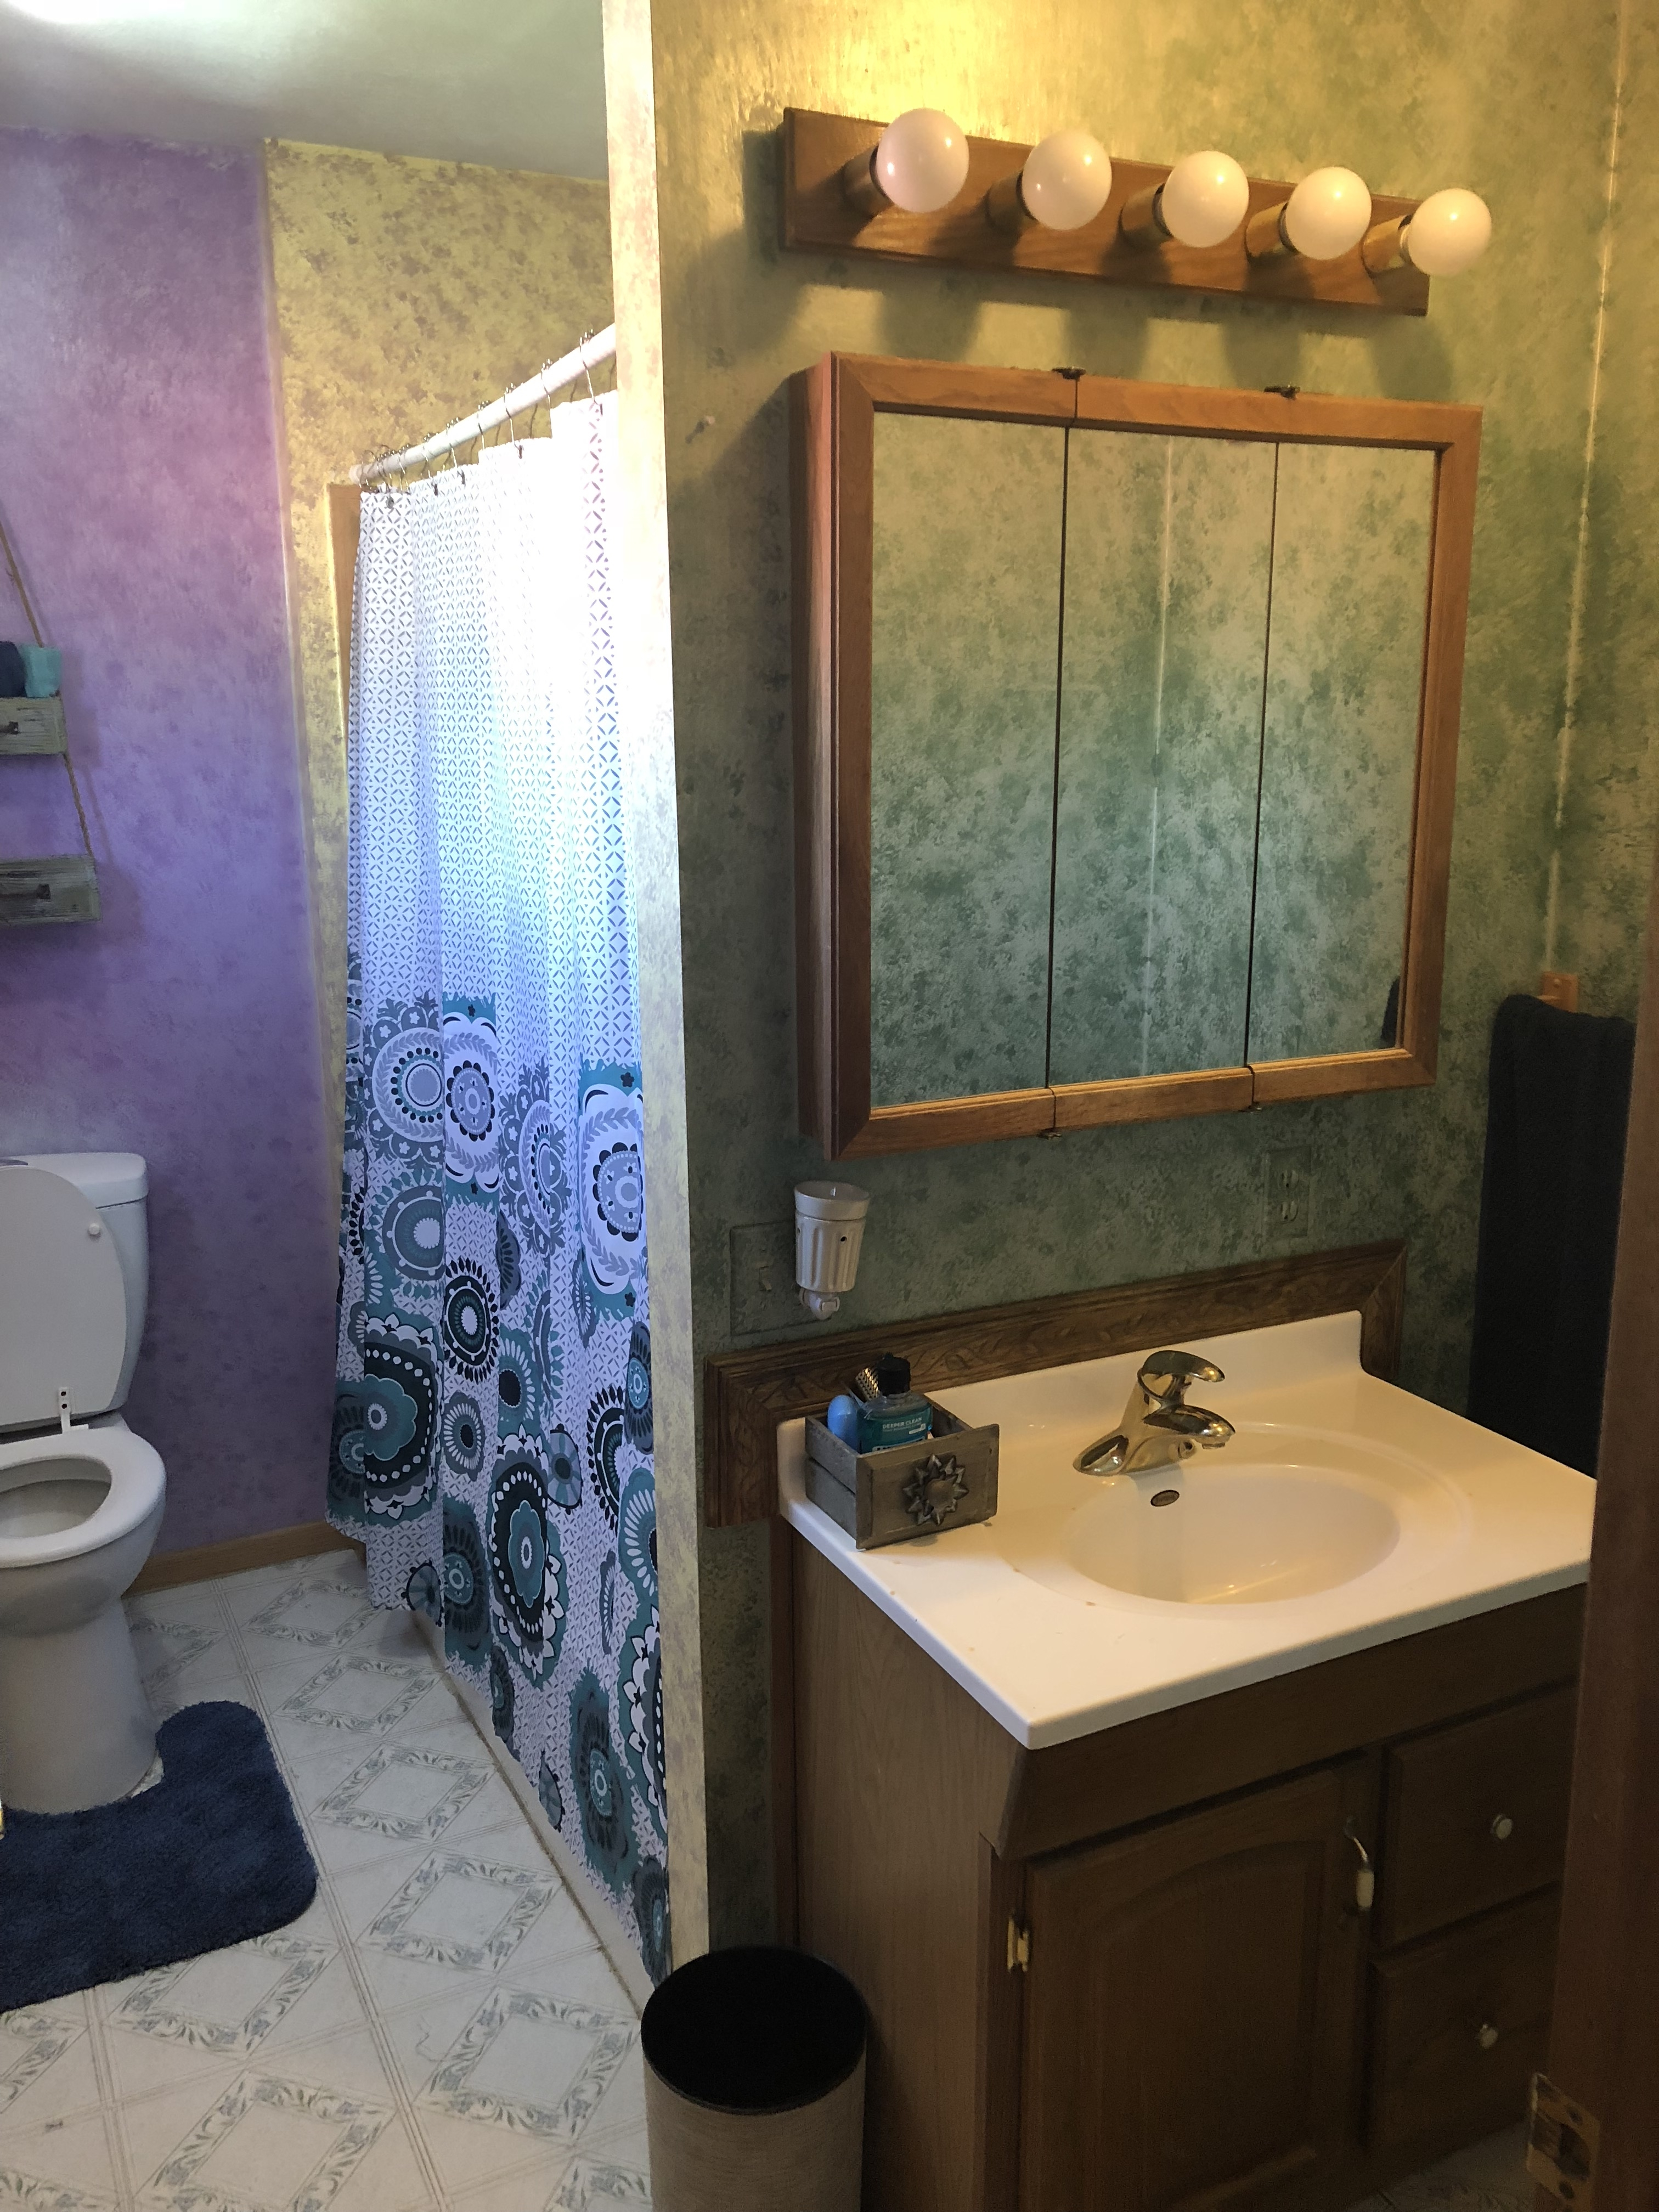 A picture of the bathroom with toilet and shower stall to the left, and the sink, light, and waste bin in front of the shower stall and to the right.